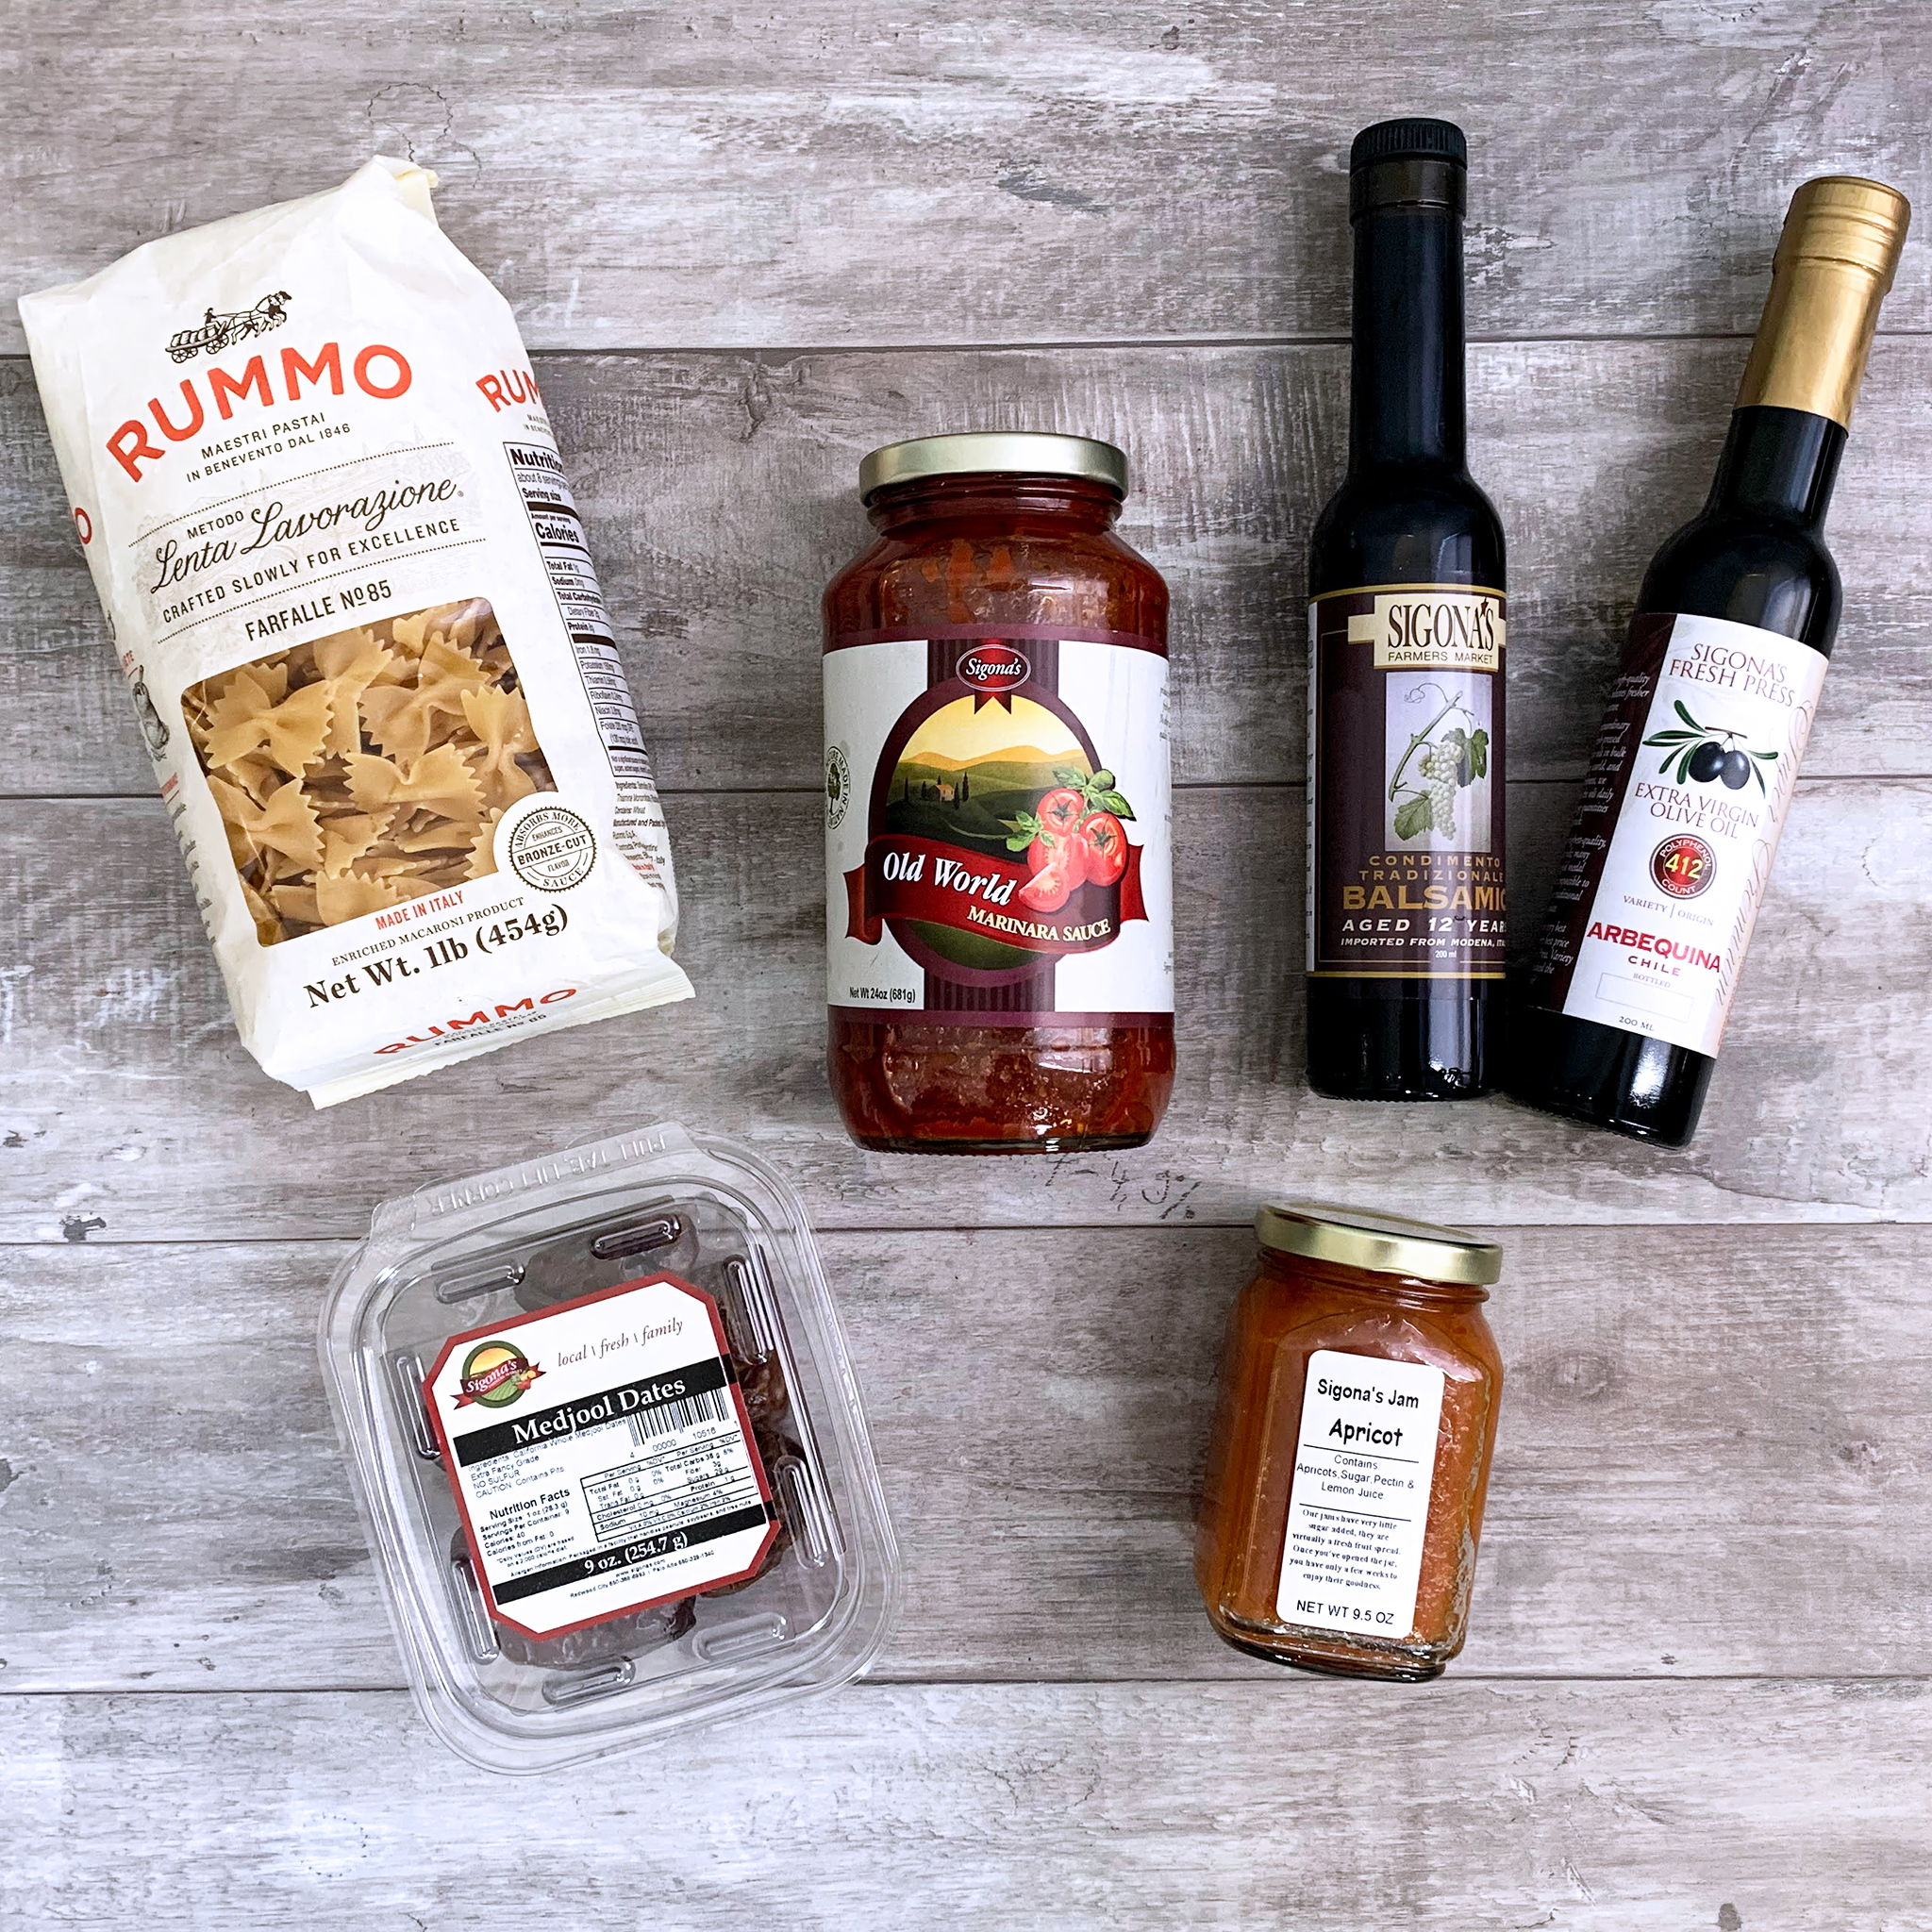 Sigona's Favorites Box with pasta sauce, olive oil, balsamic vinegar and more!